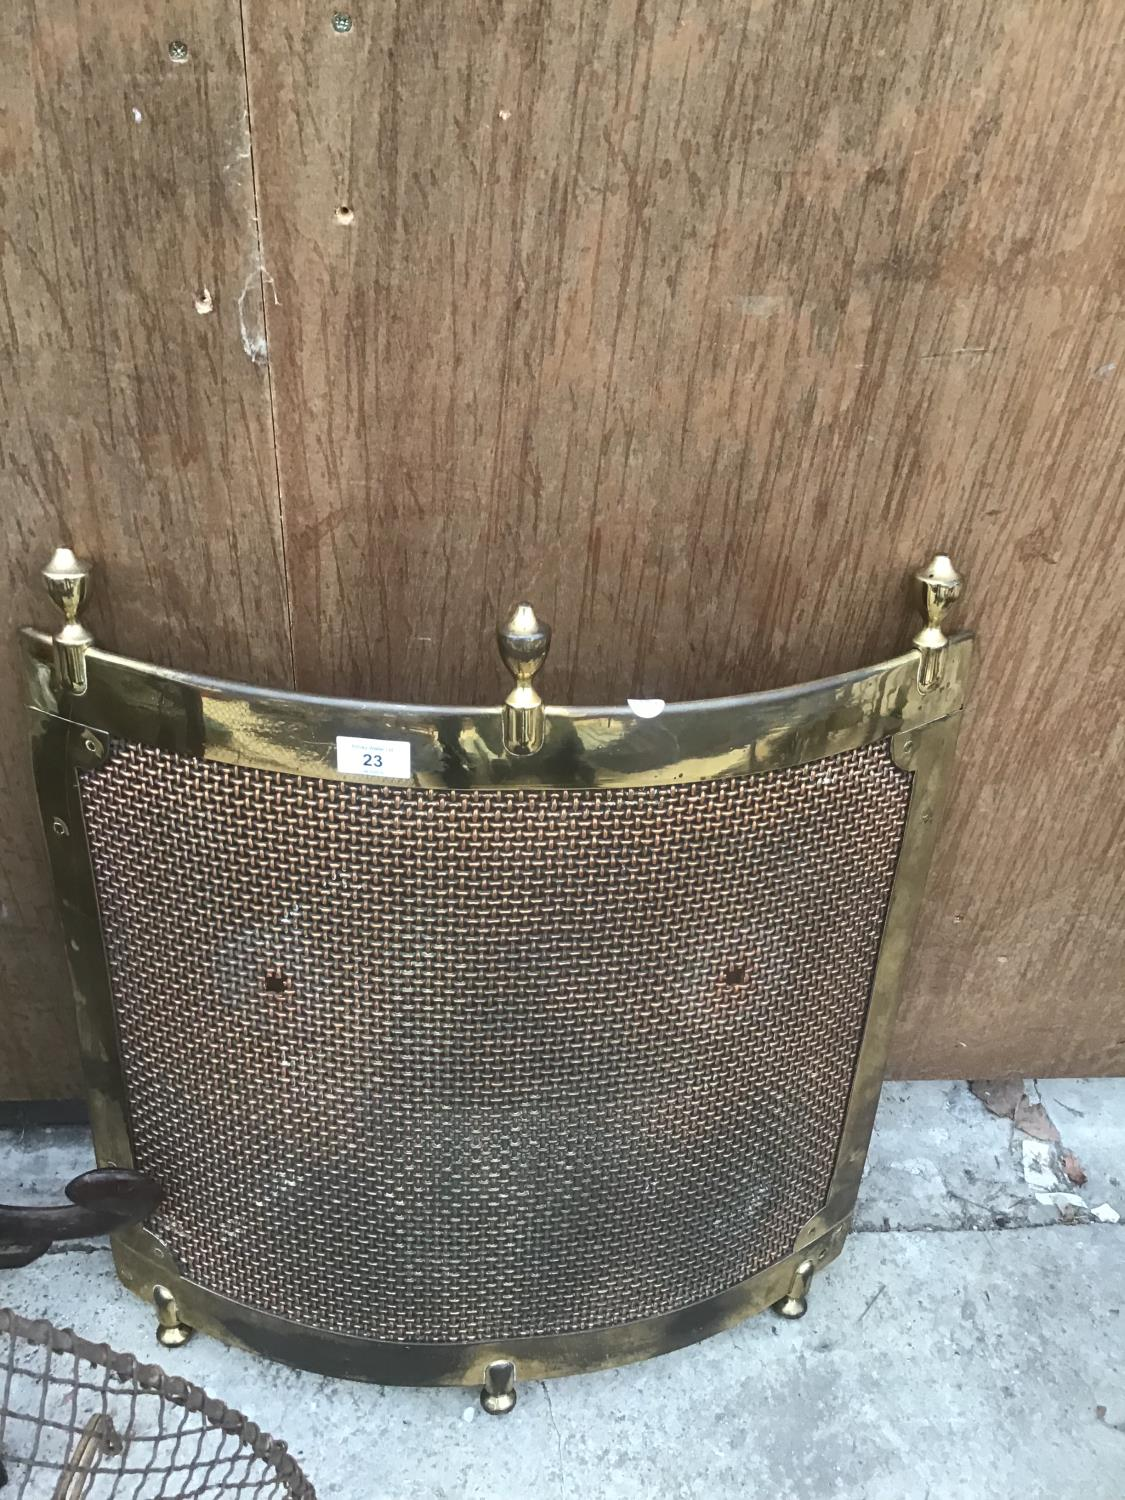 THREE VINTAGE FIRE GUARDS ONE ORNATE BLACK, ONE BRASS AND ONE MESH - Image 2 of 4